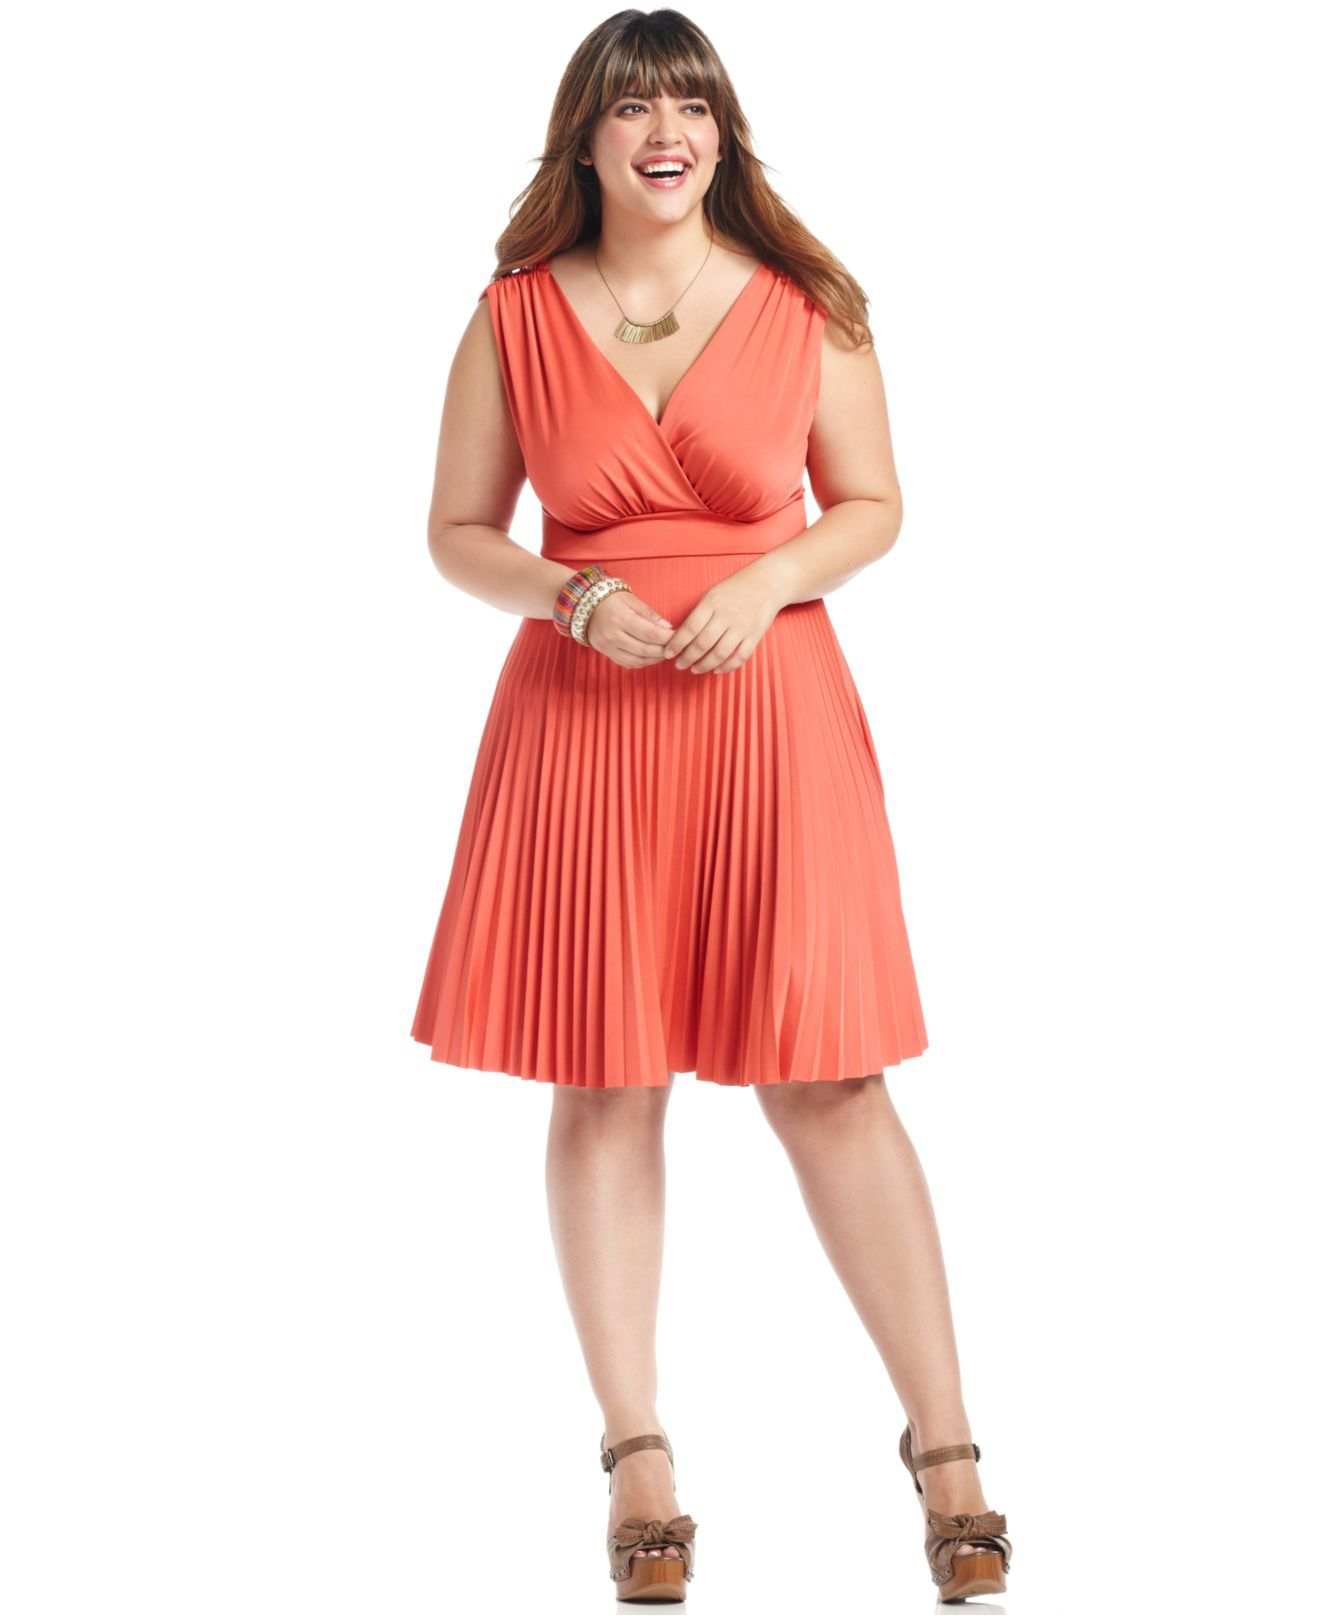 Plus size coral dress for wedding  Soprano Plus Size Dress Sleeveless Pleated ALine  Plus Size